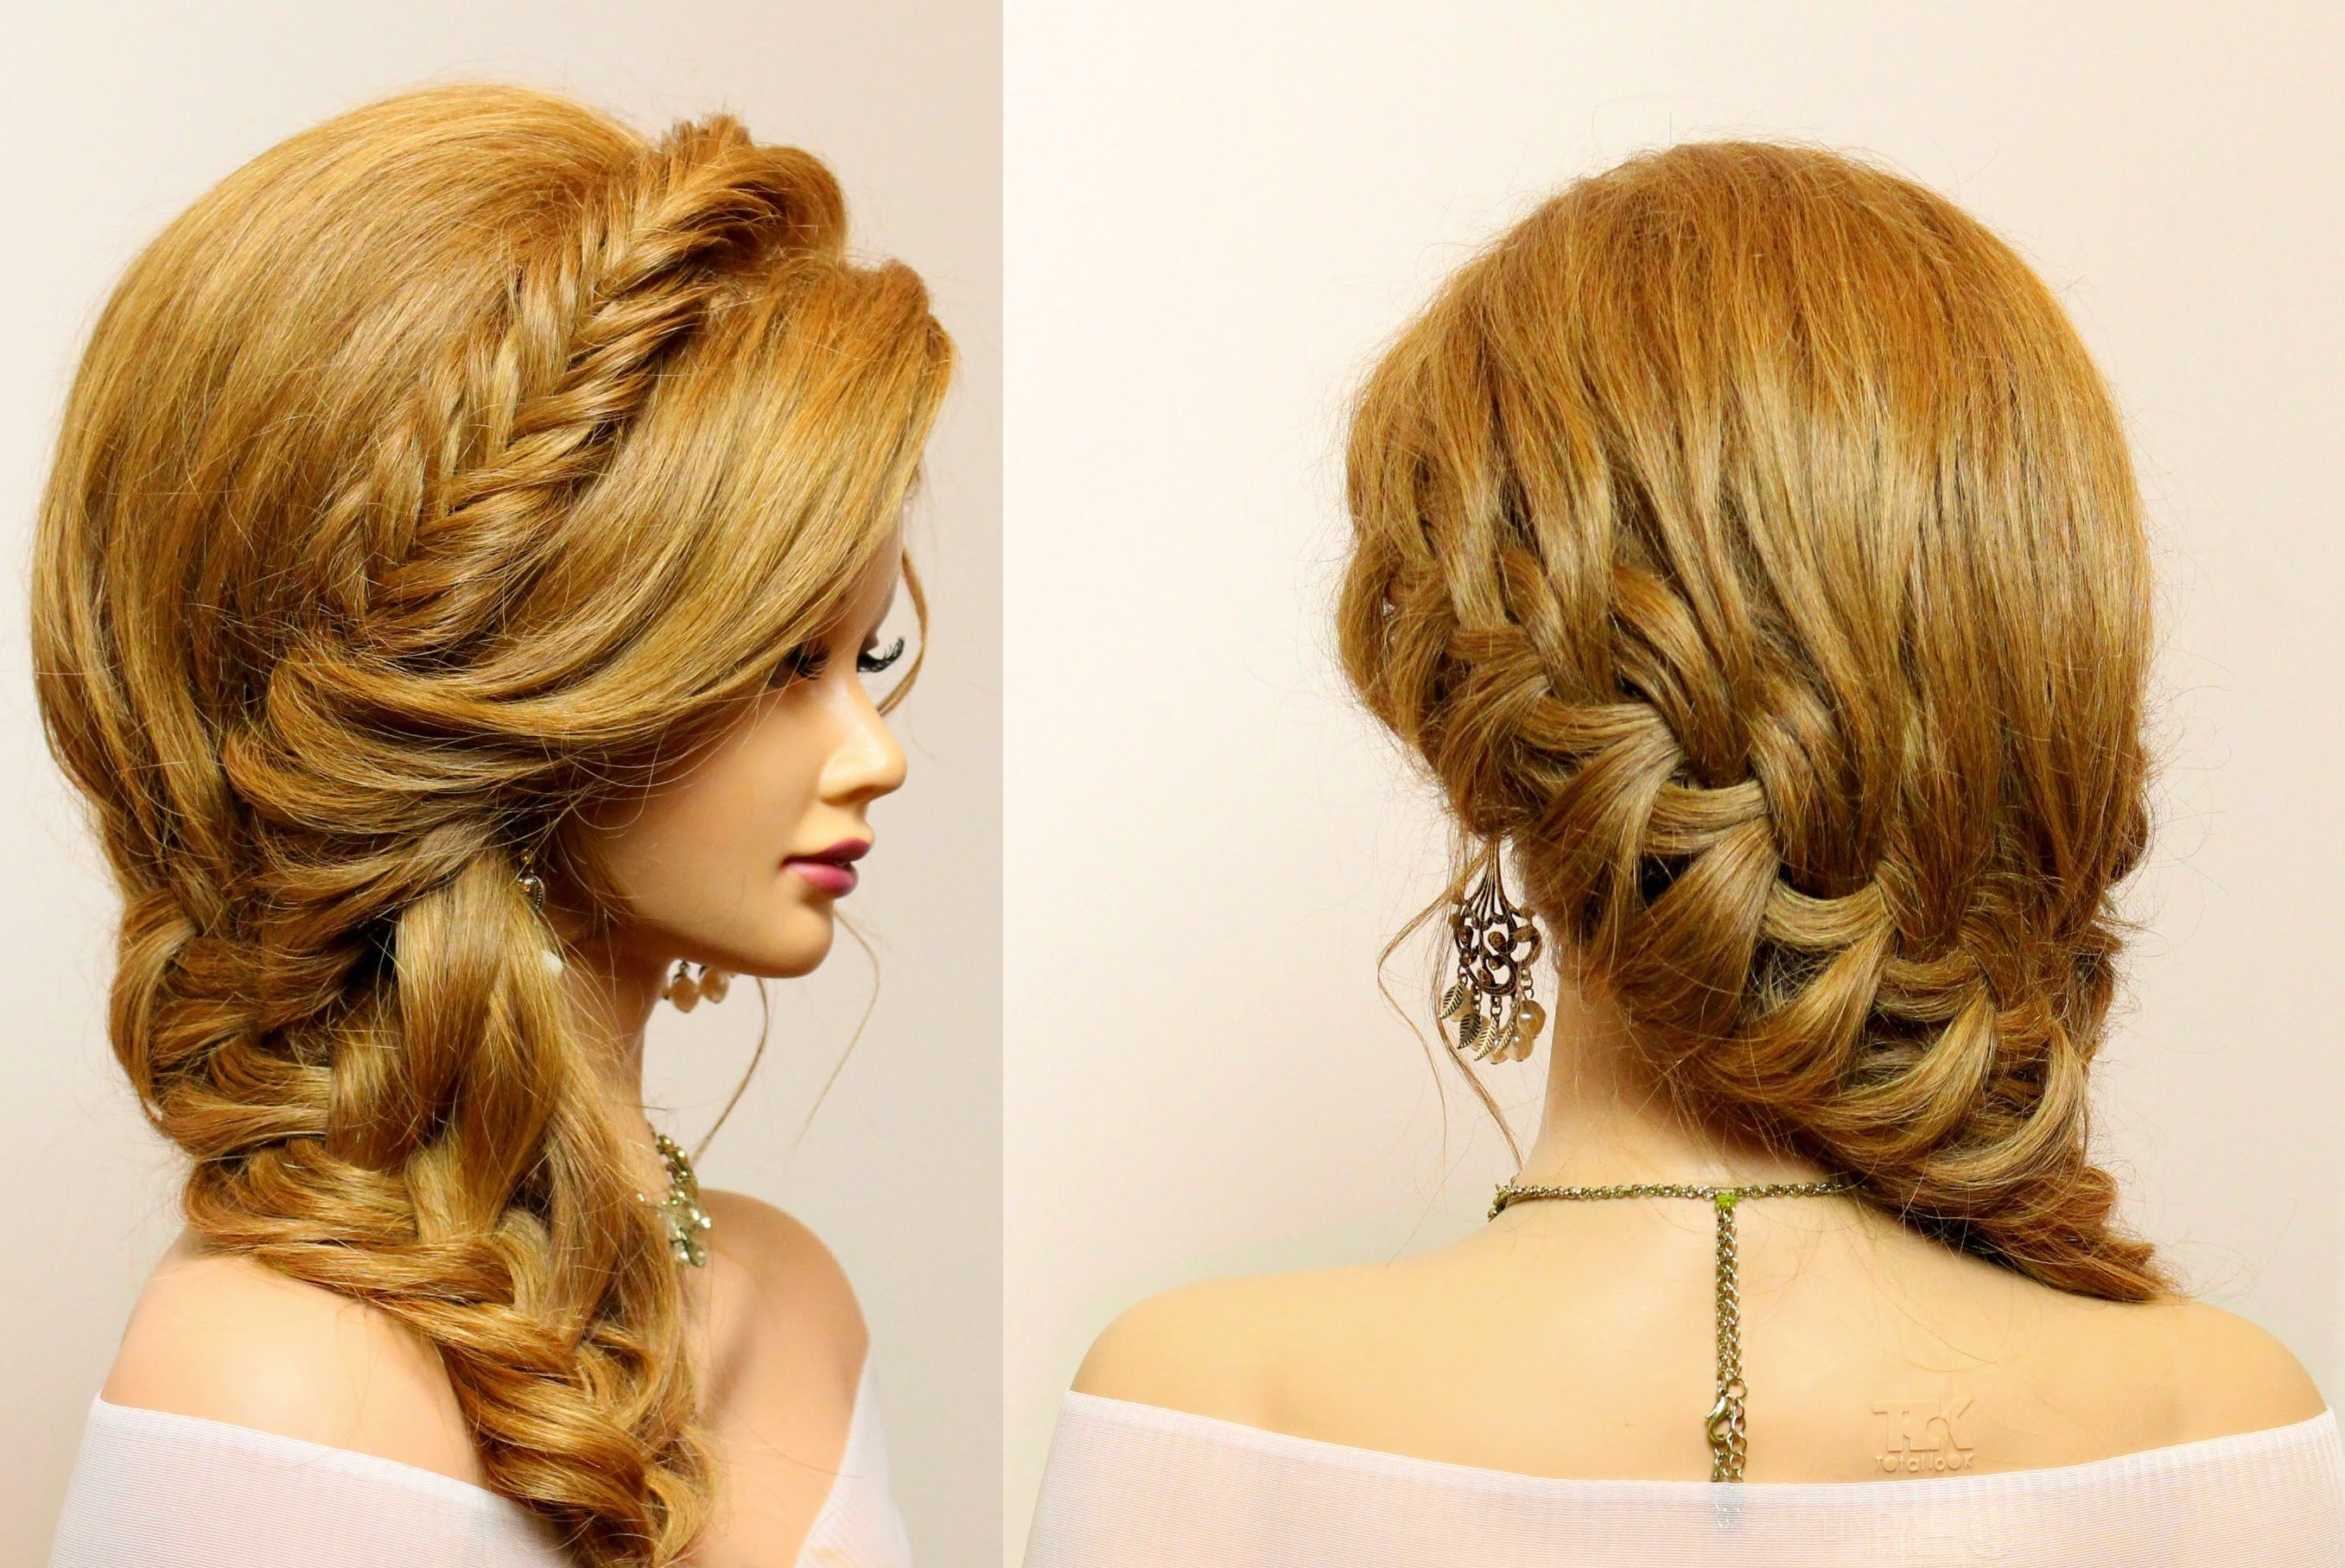 Braided hairstyle for party everyday Long hair tutorial